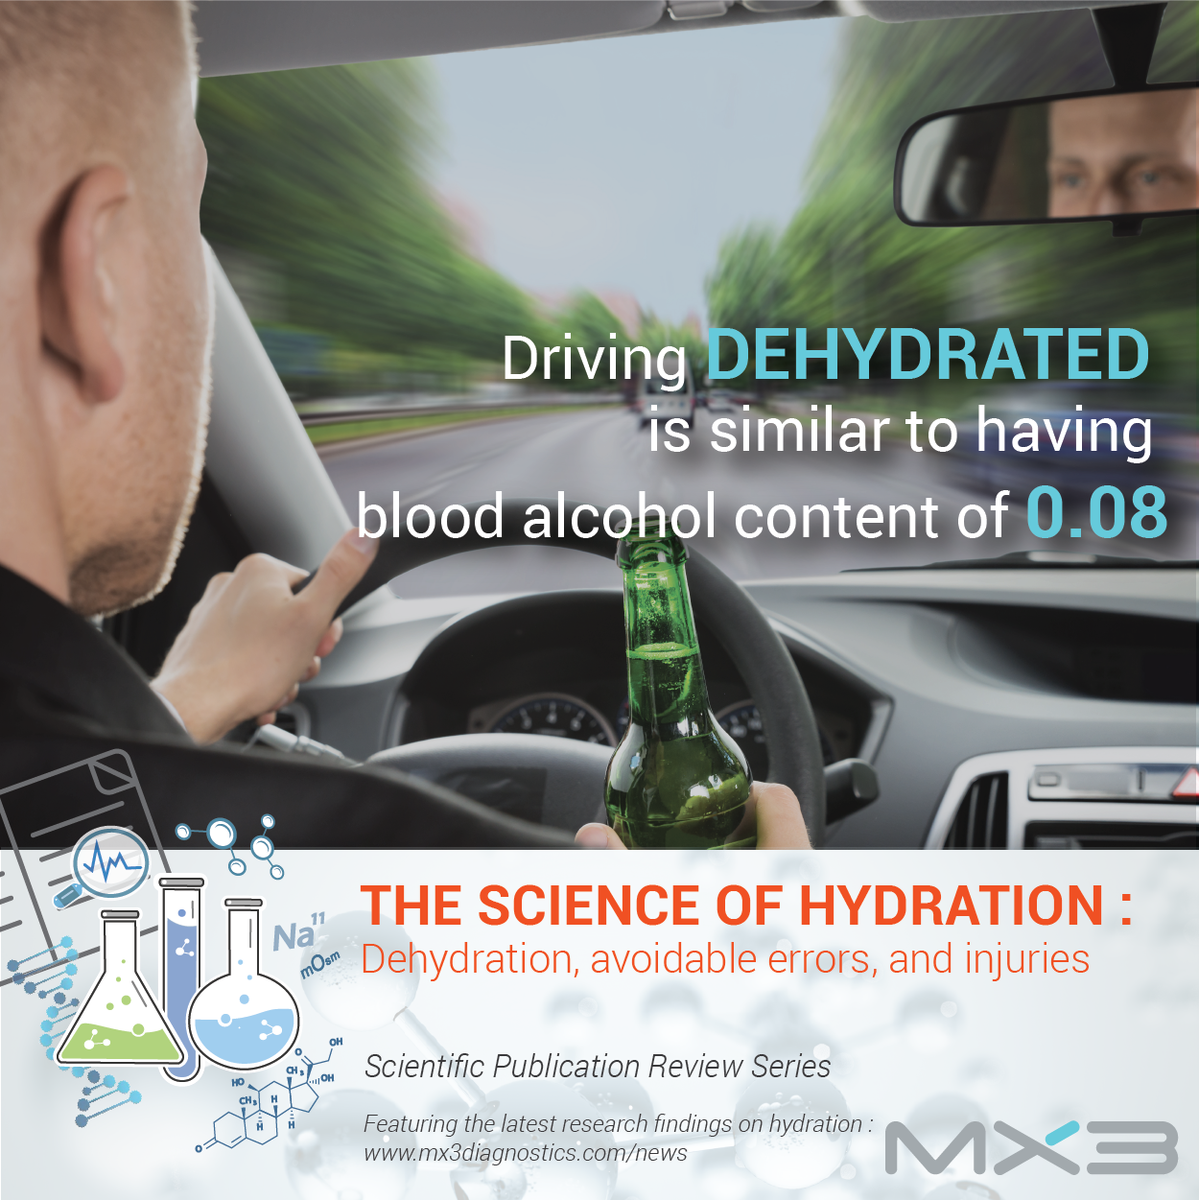 Science of Hydration - Errors and accidents